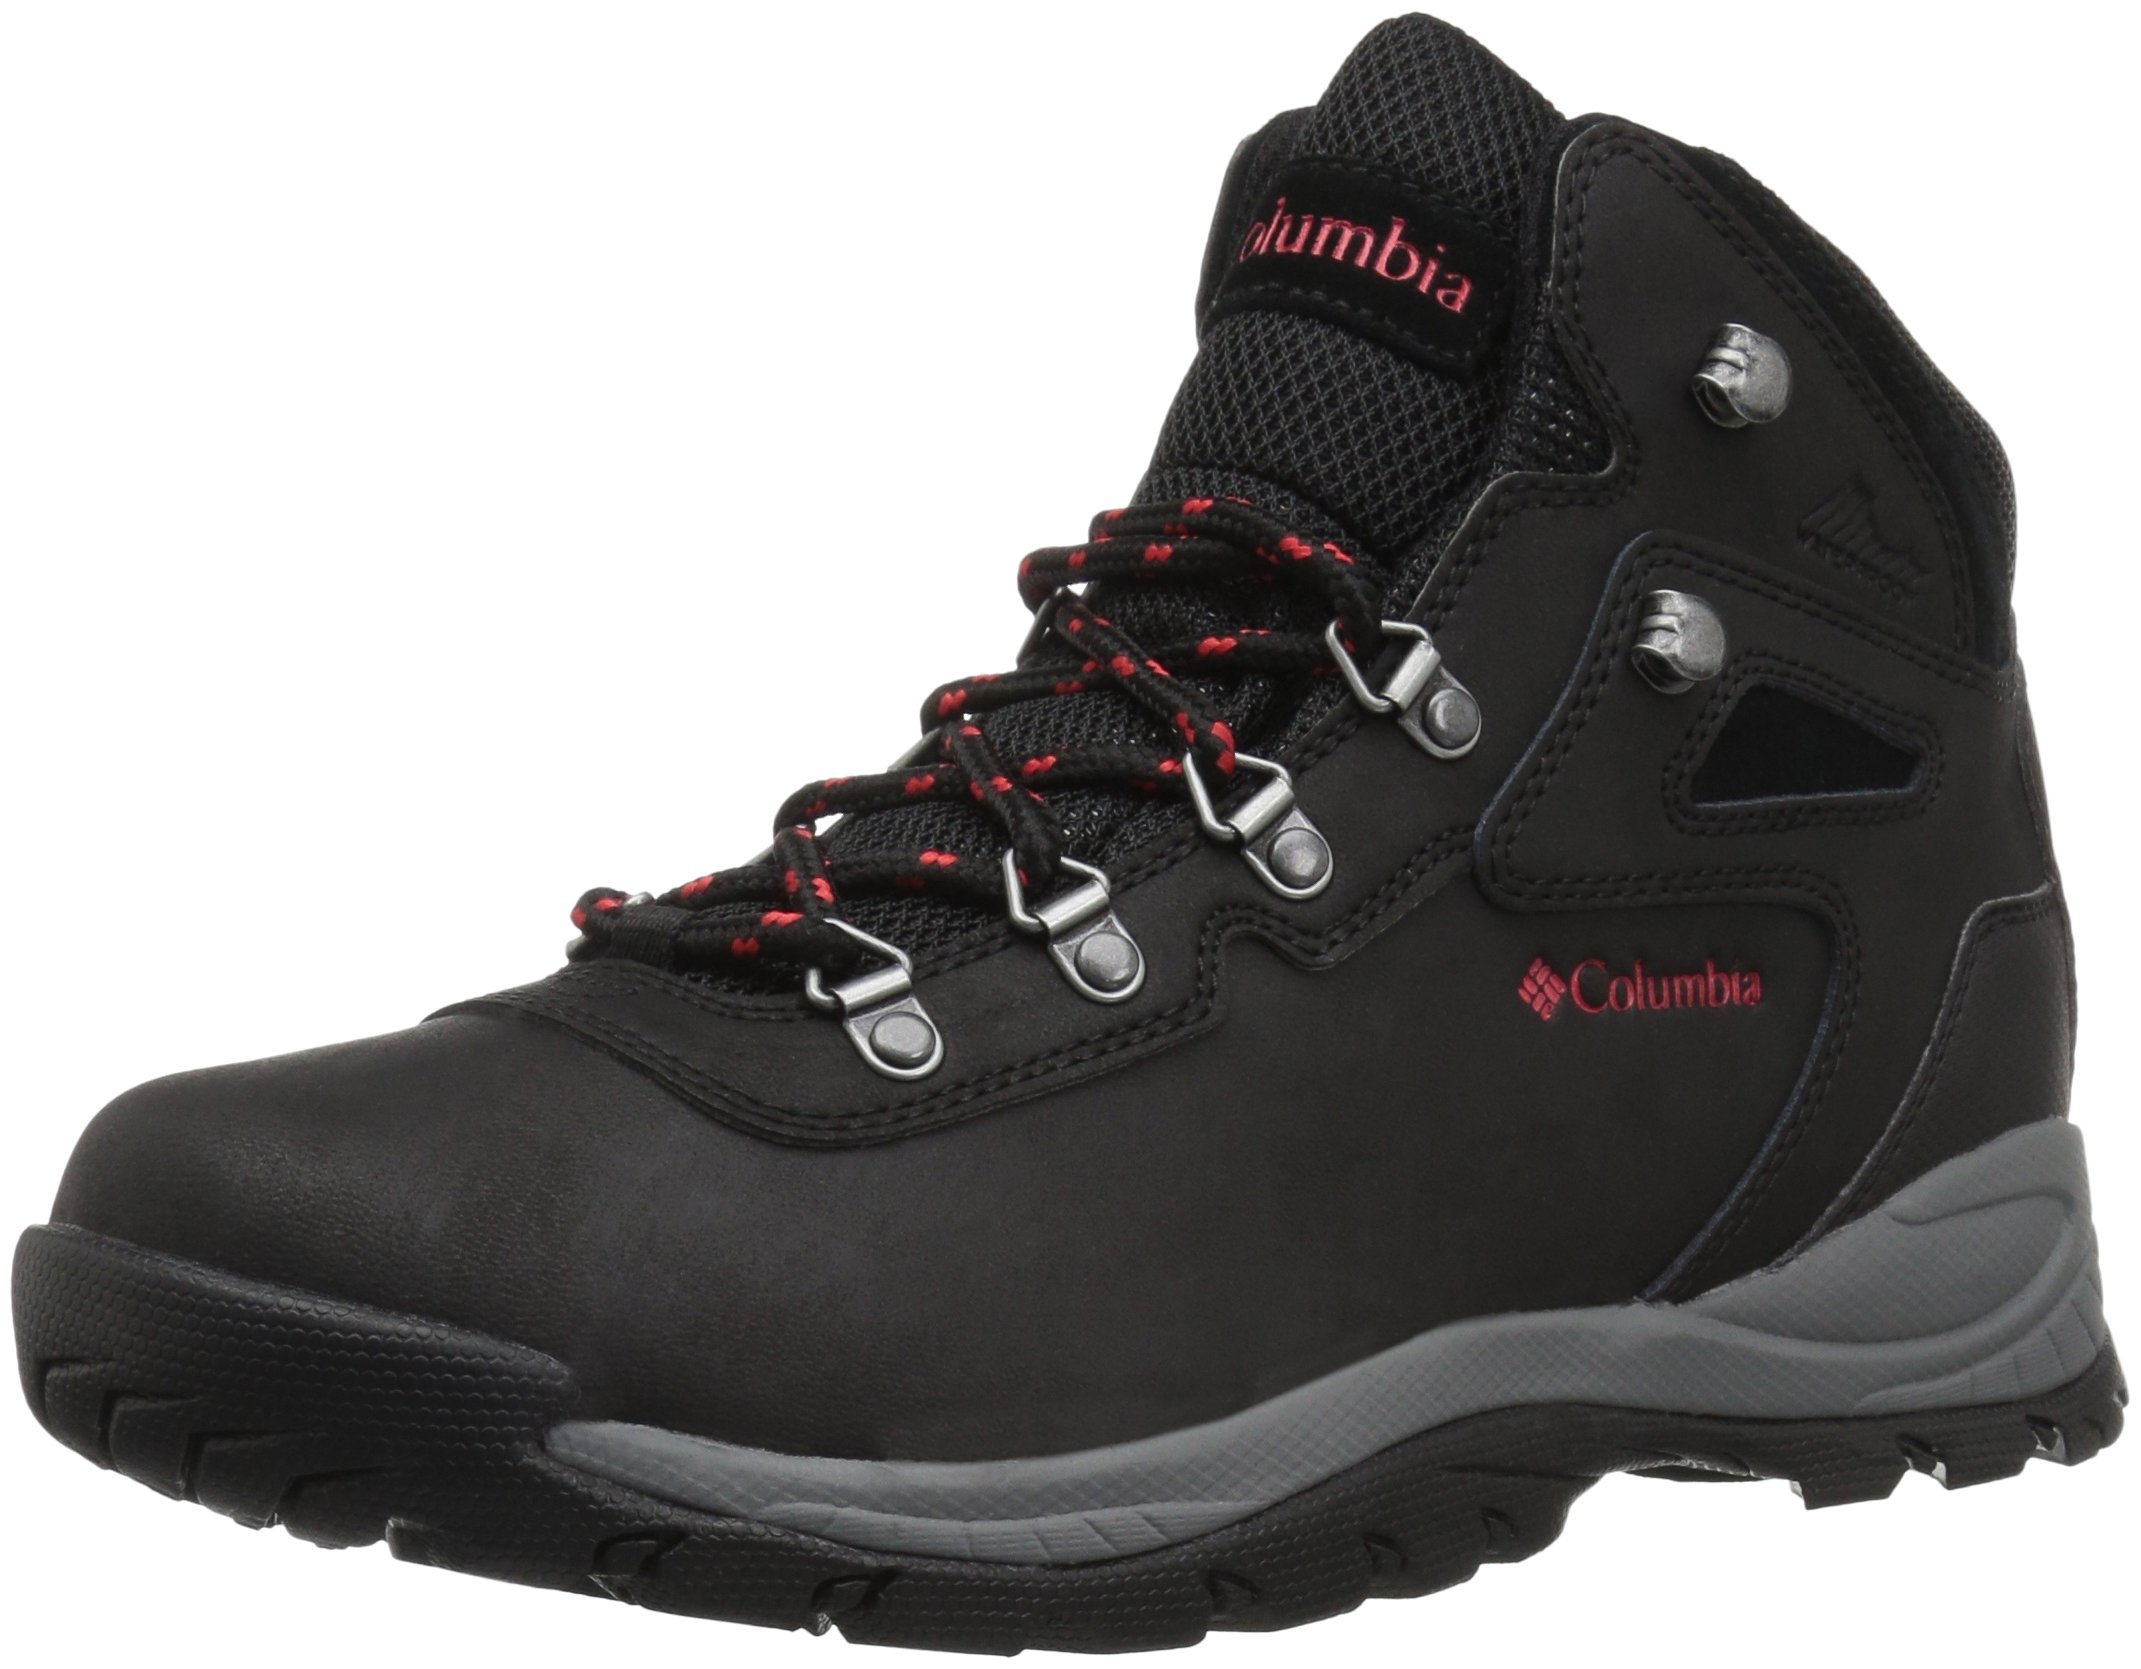 Columbia Women's Newton Ridge Plus Hiking Shoe, Black, Poppy Red, 8 Wide US